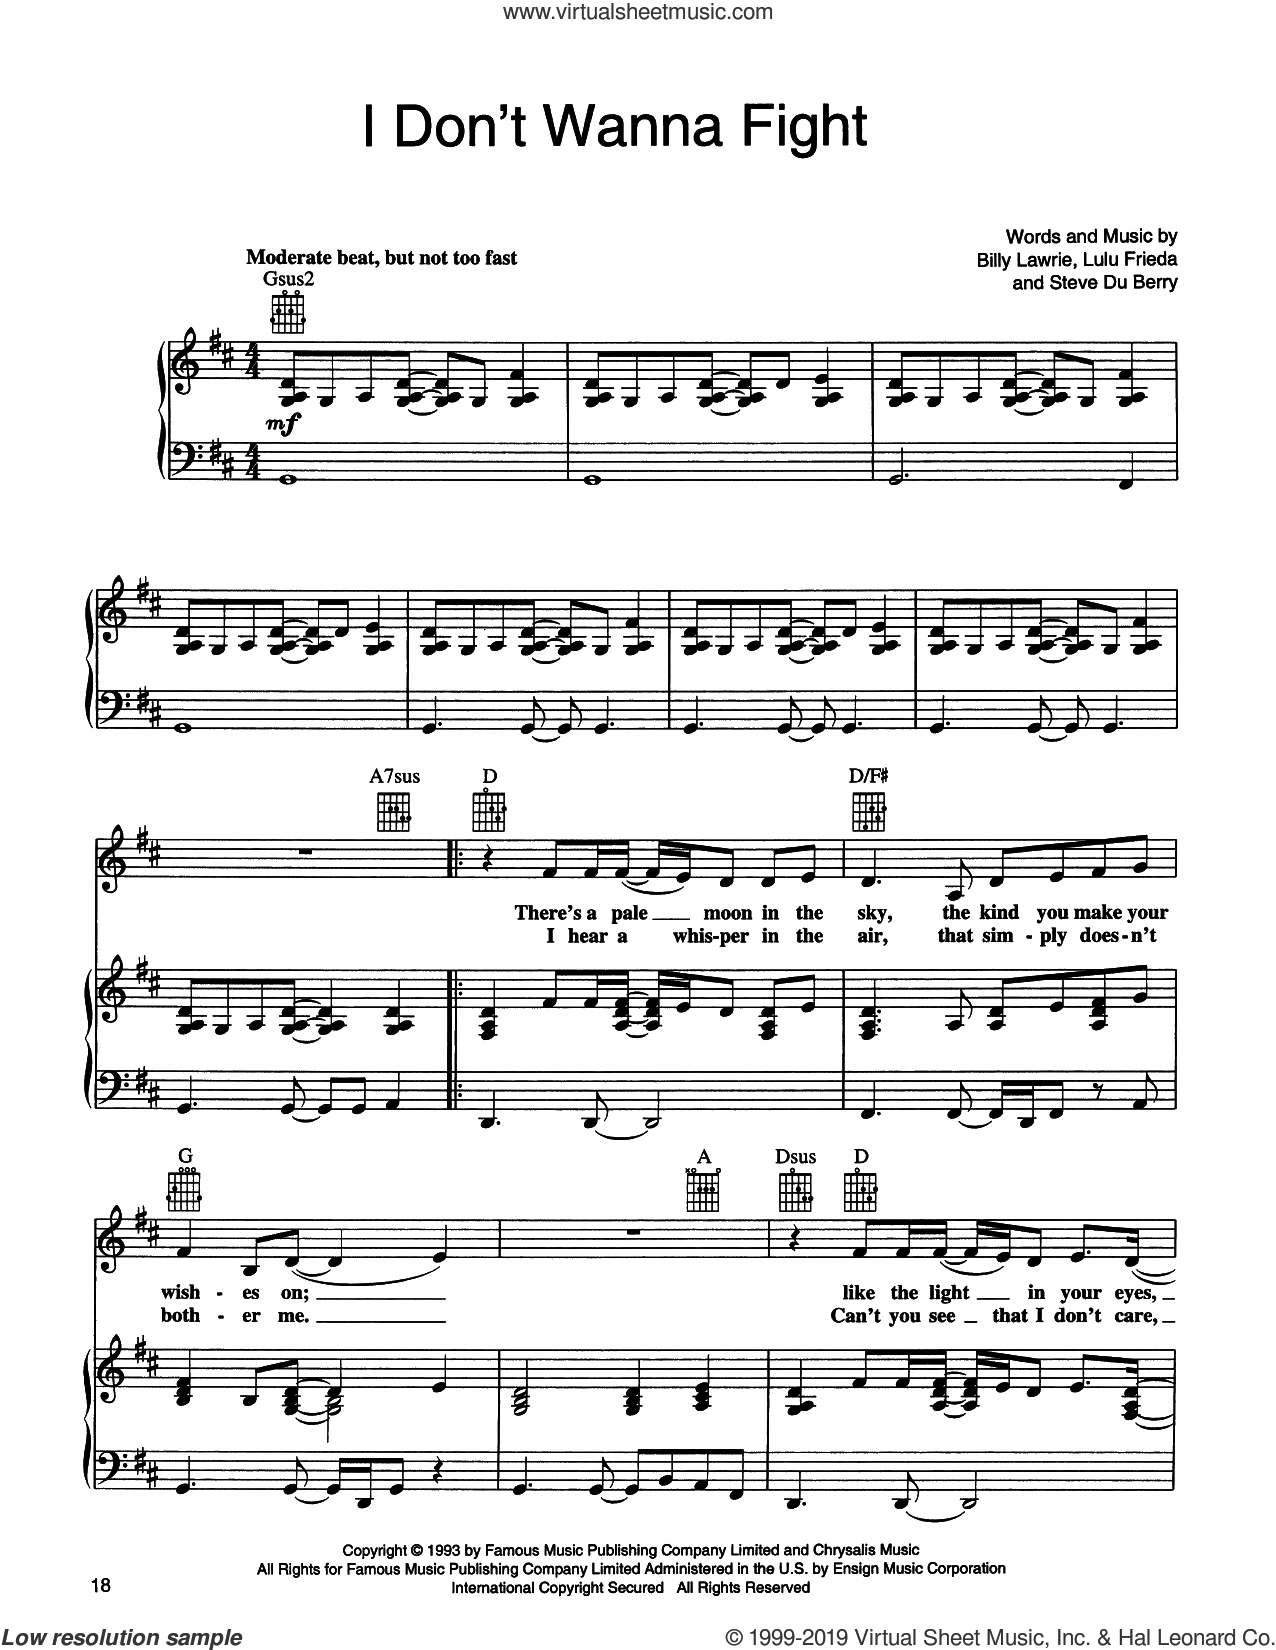 I Don't Wanna Fight sheet music for voice, piano or guitar by Tina Turner, Billy Lawrie, Lulu Frieda and Steve Du Berry, intermediate skill level